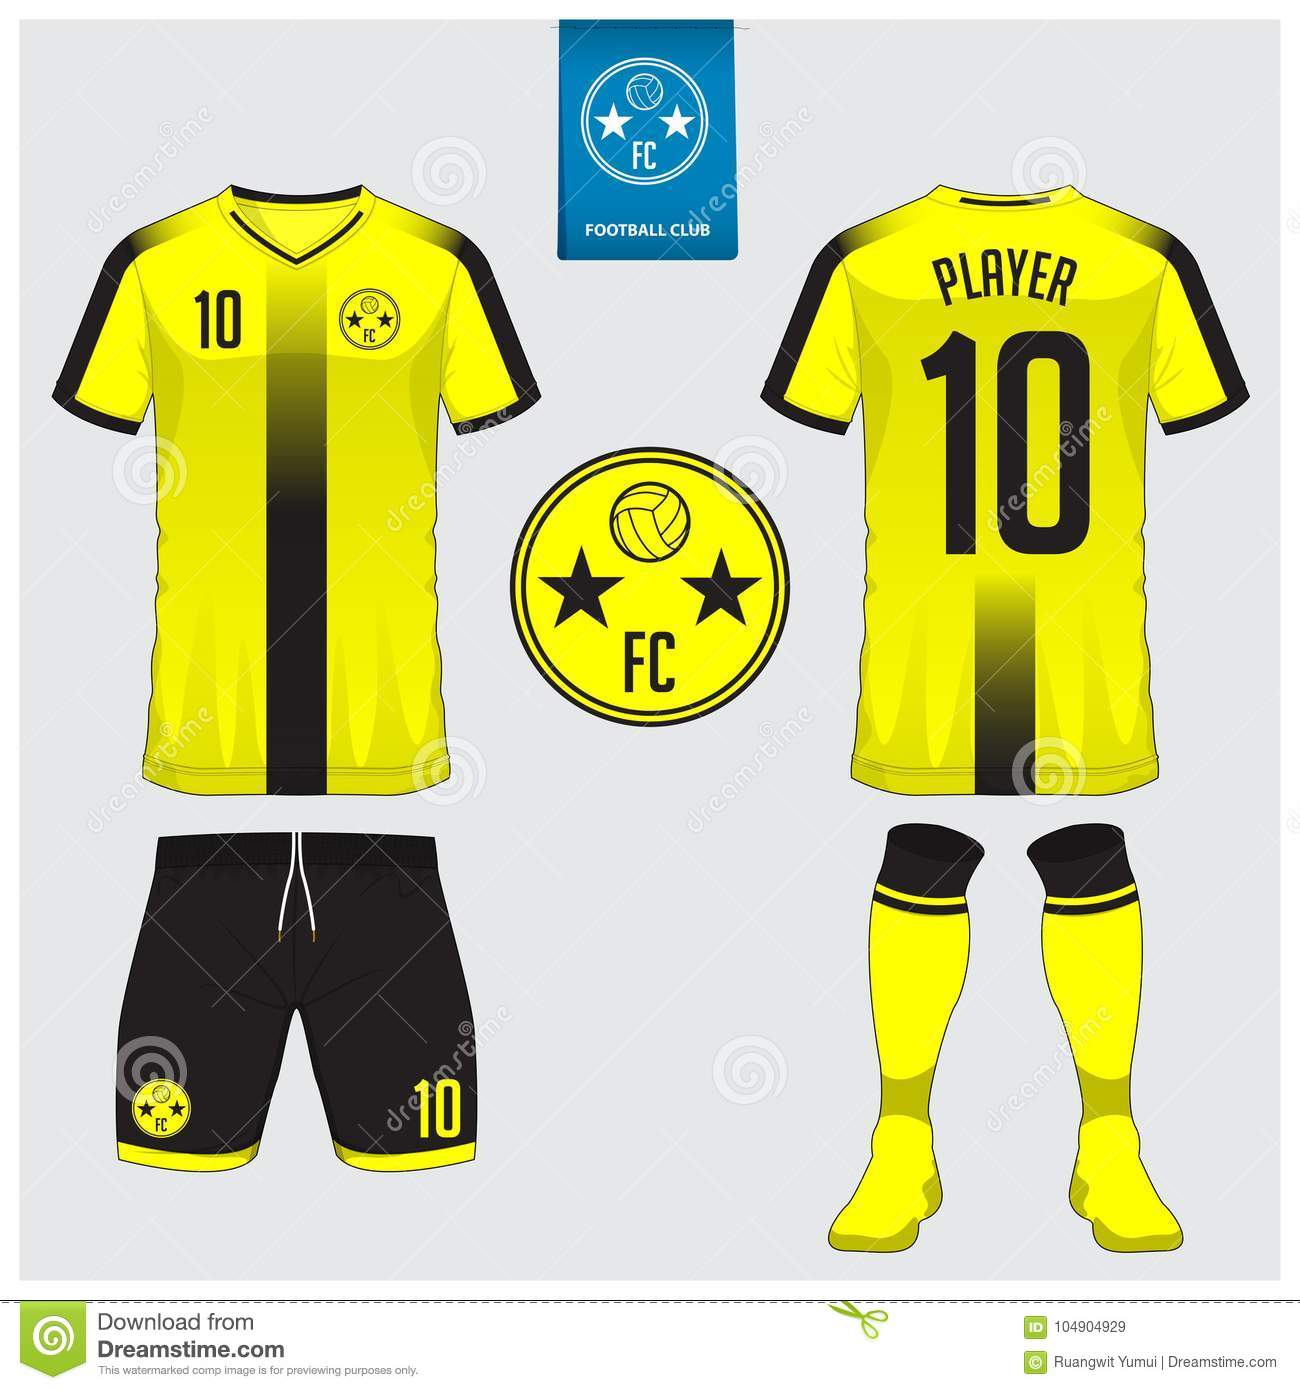 Soccer jersey or football kit template for football club. Football shirt  mock up. Front 89fc8d7c4